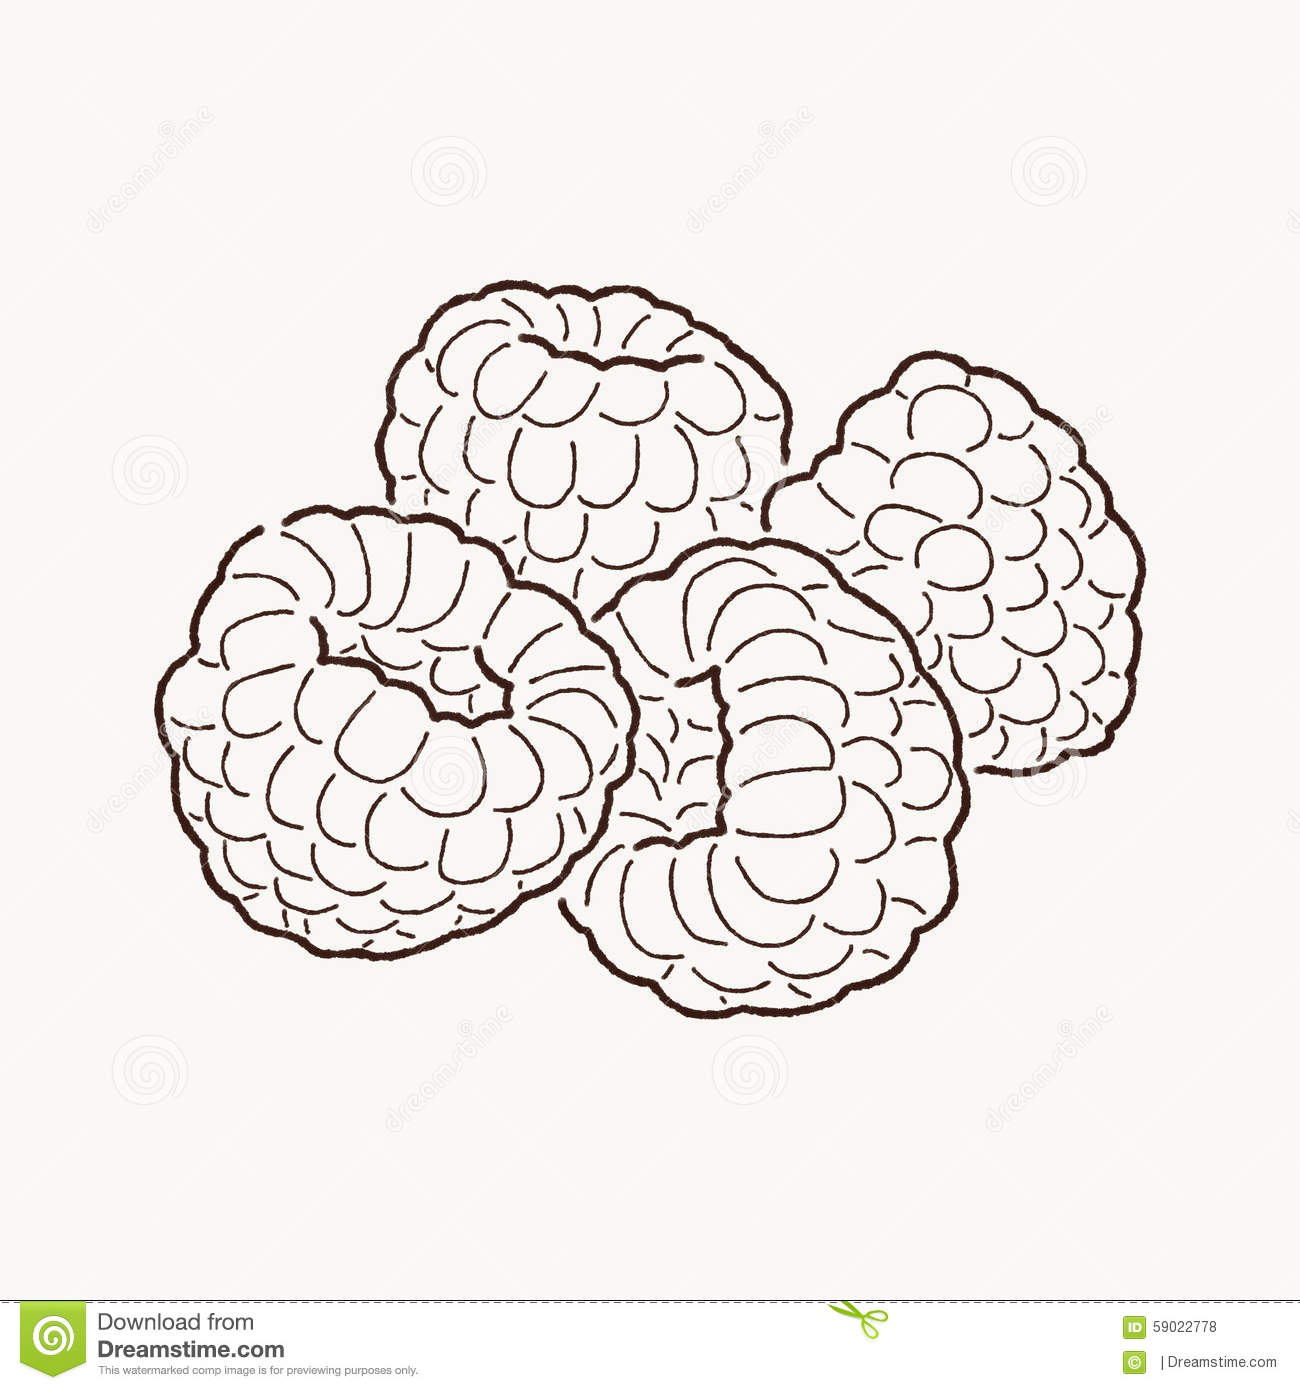 Raspberry Clipart Black And White Royalty free stock photos: raspberry ...